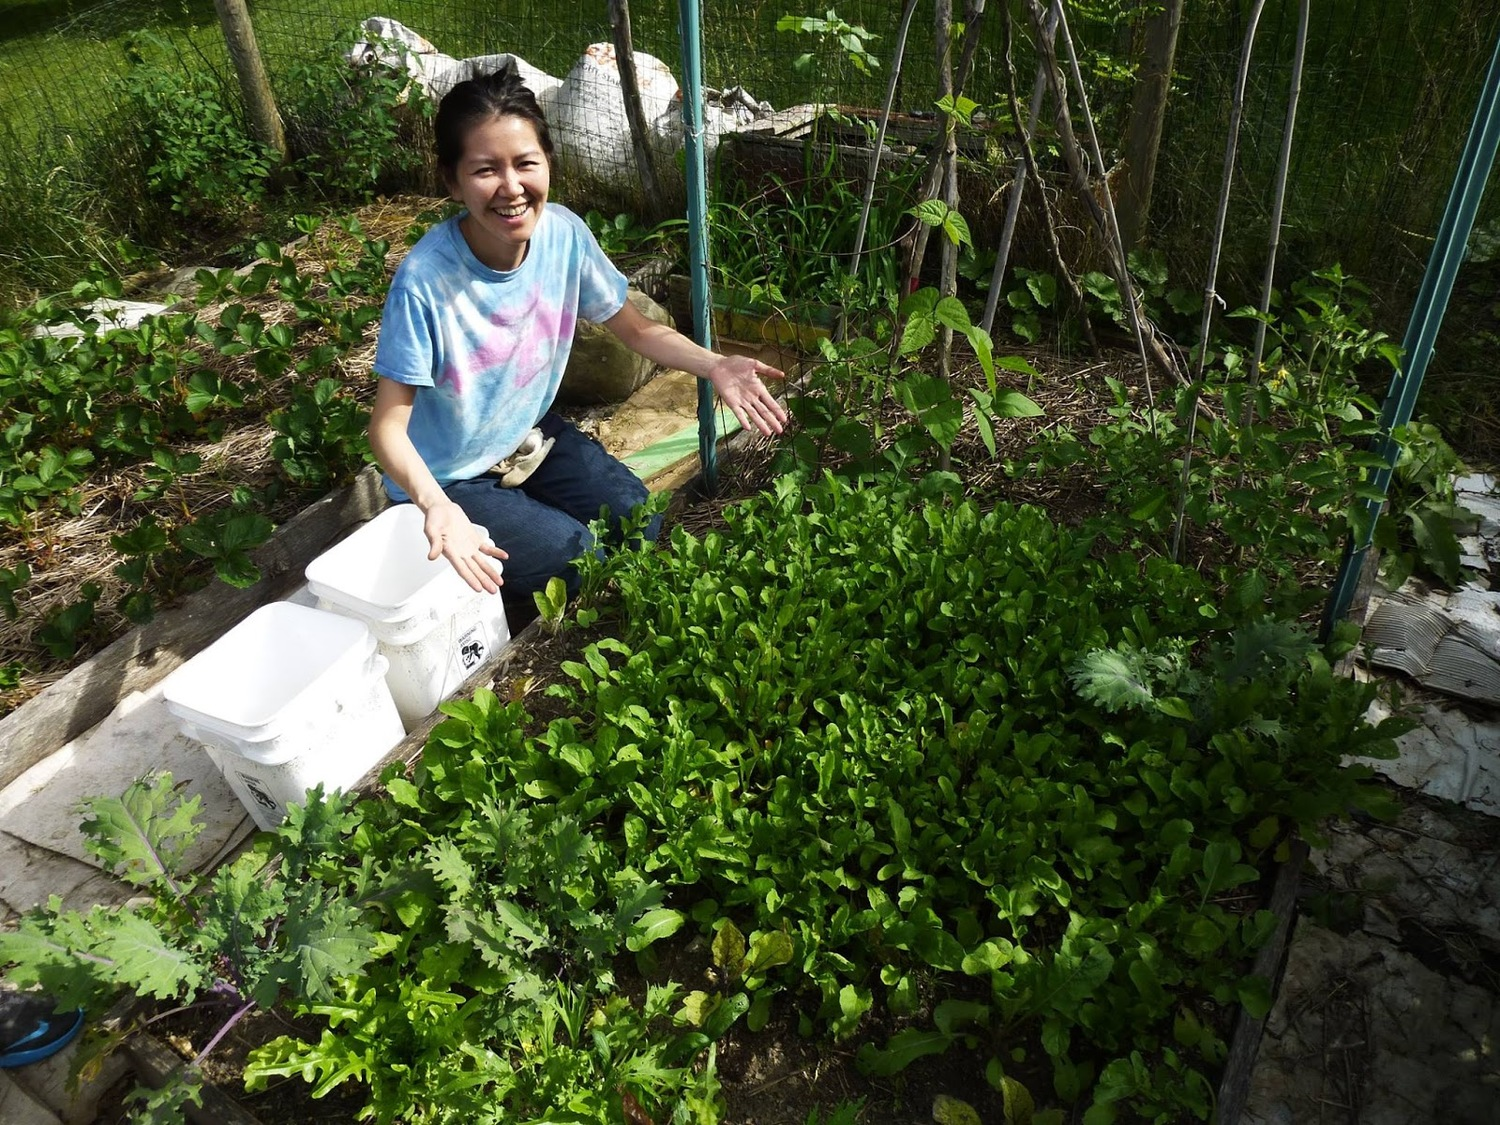 """Yayoi works in her garden in West Village. She said she gets her vegetables from both her garden and her CSA share.""""CSA...it really saved me,"""" she said. """"I don't know how I'd do it without CSA and Healthy Food For All. It's just so wonderful."""""""